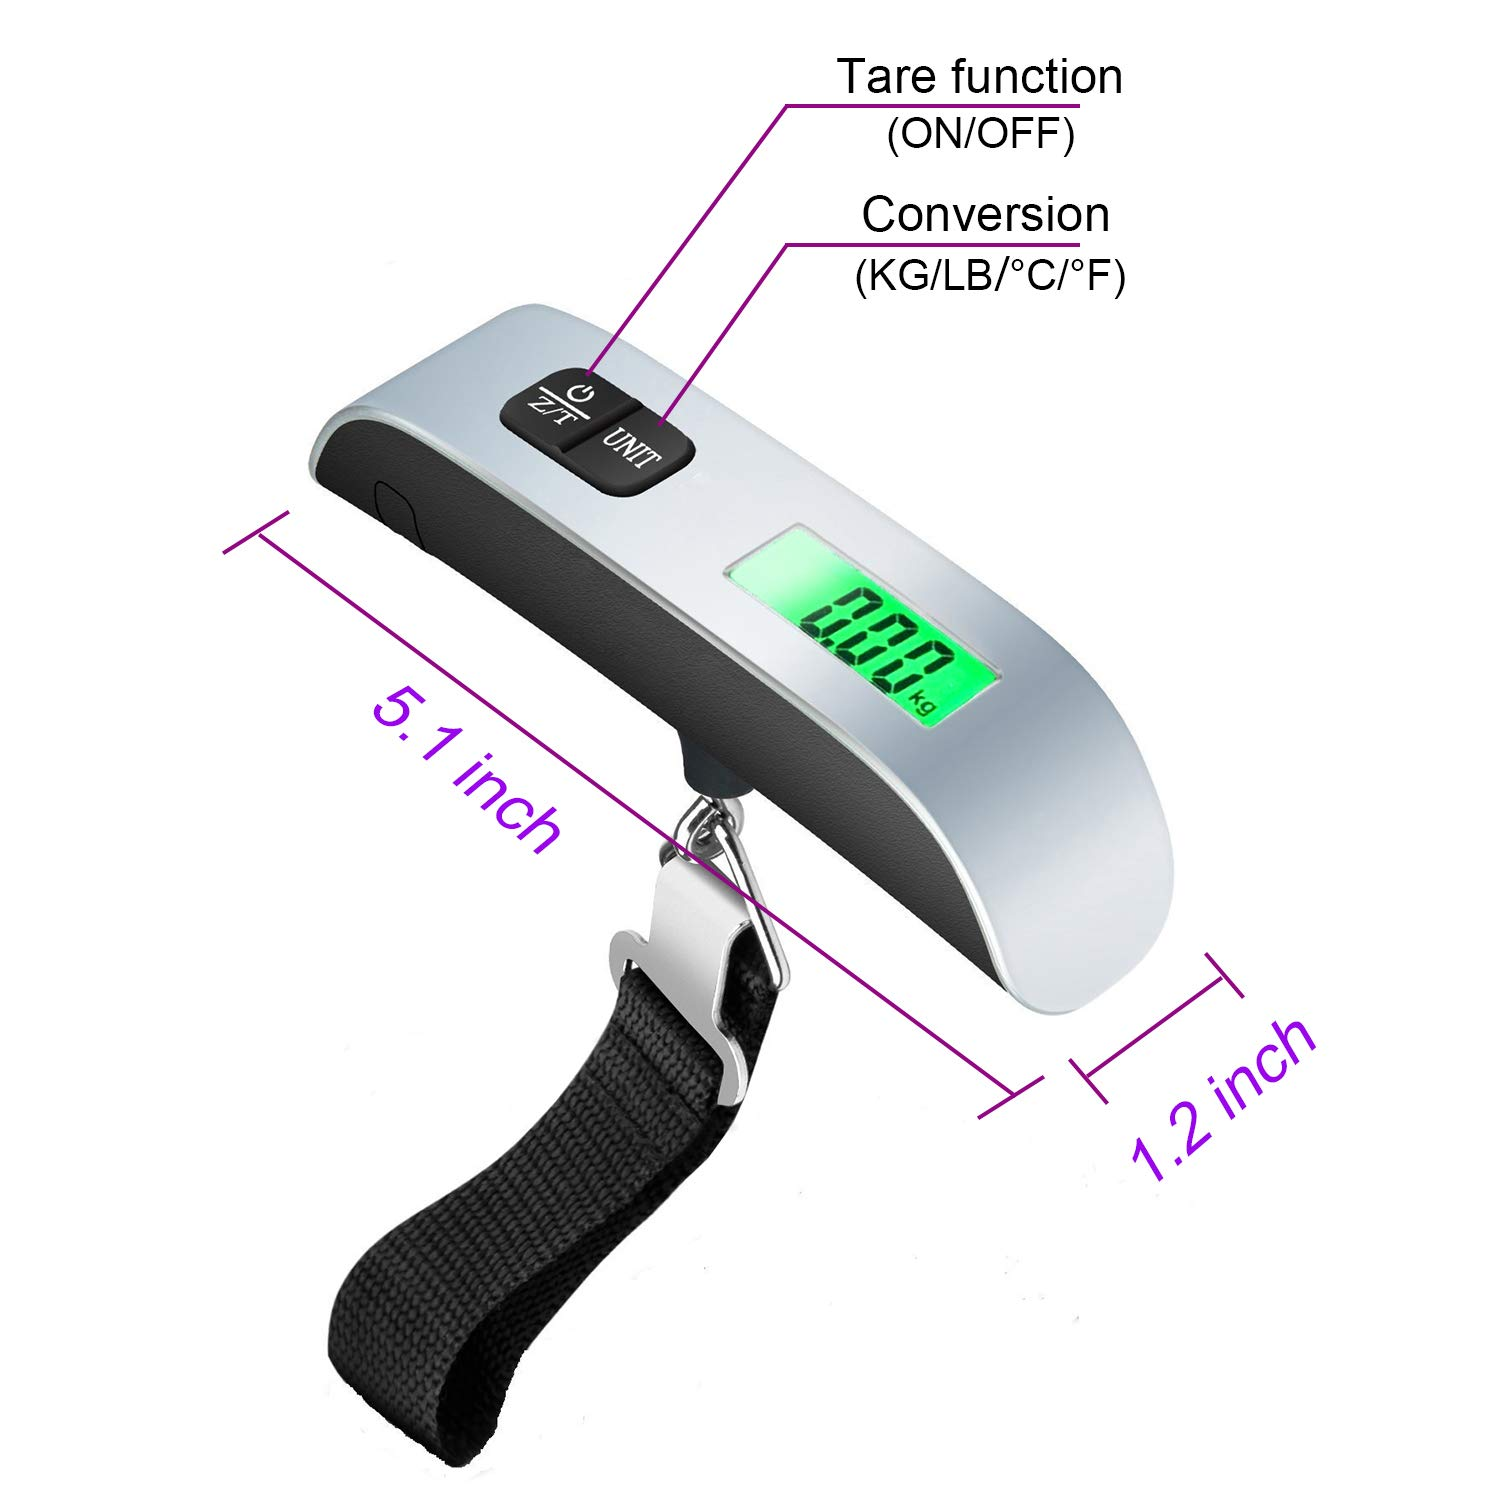 Digital Luggage Scale Max 110lbs//50kg Baggage Scale with Backlit LCD Display WGGE Travel Luggage Weight Scale